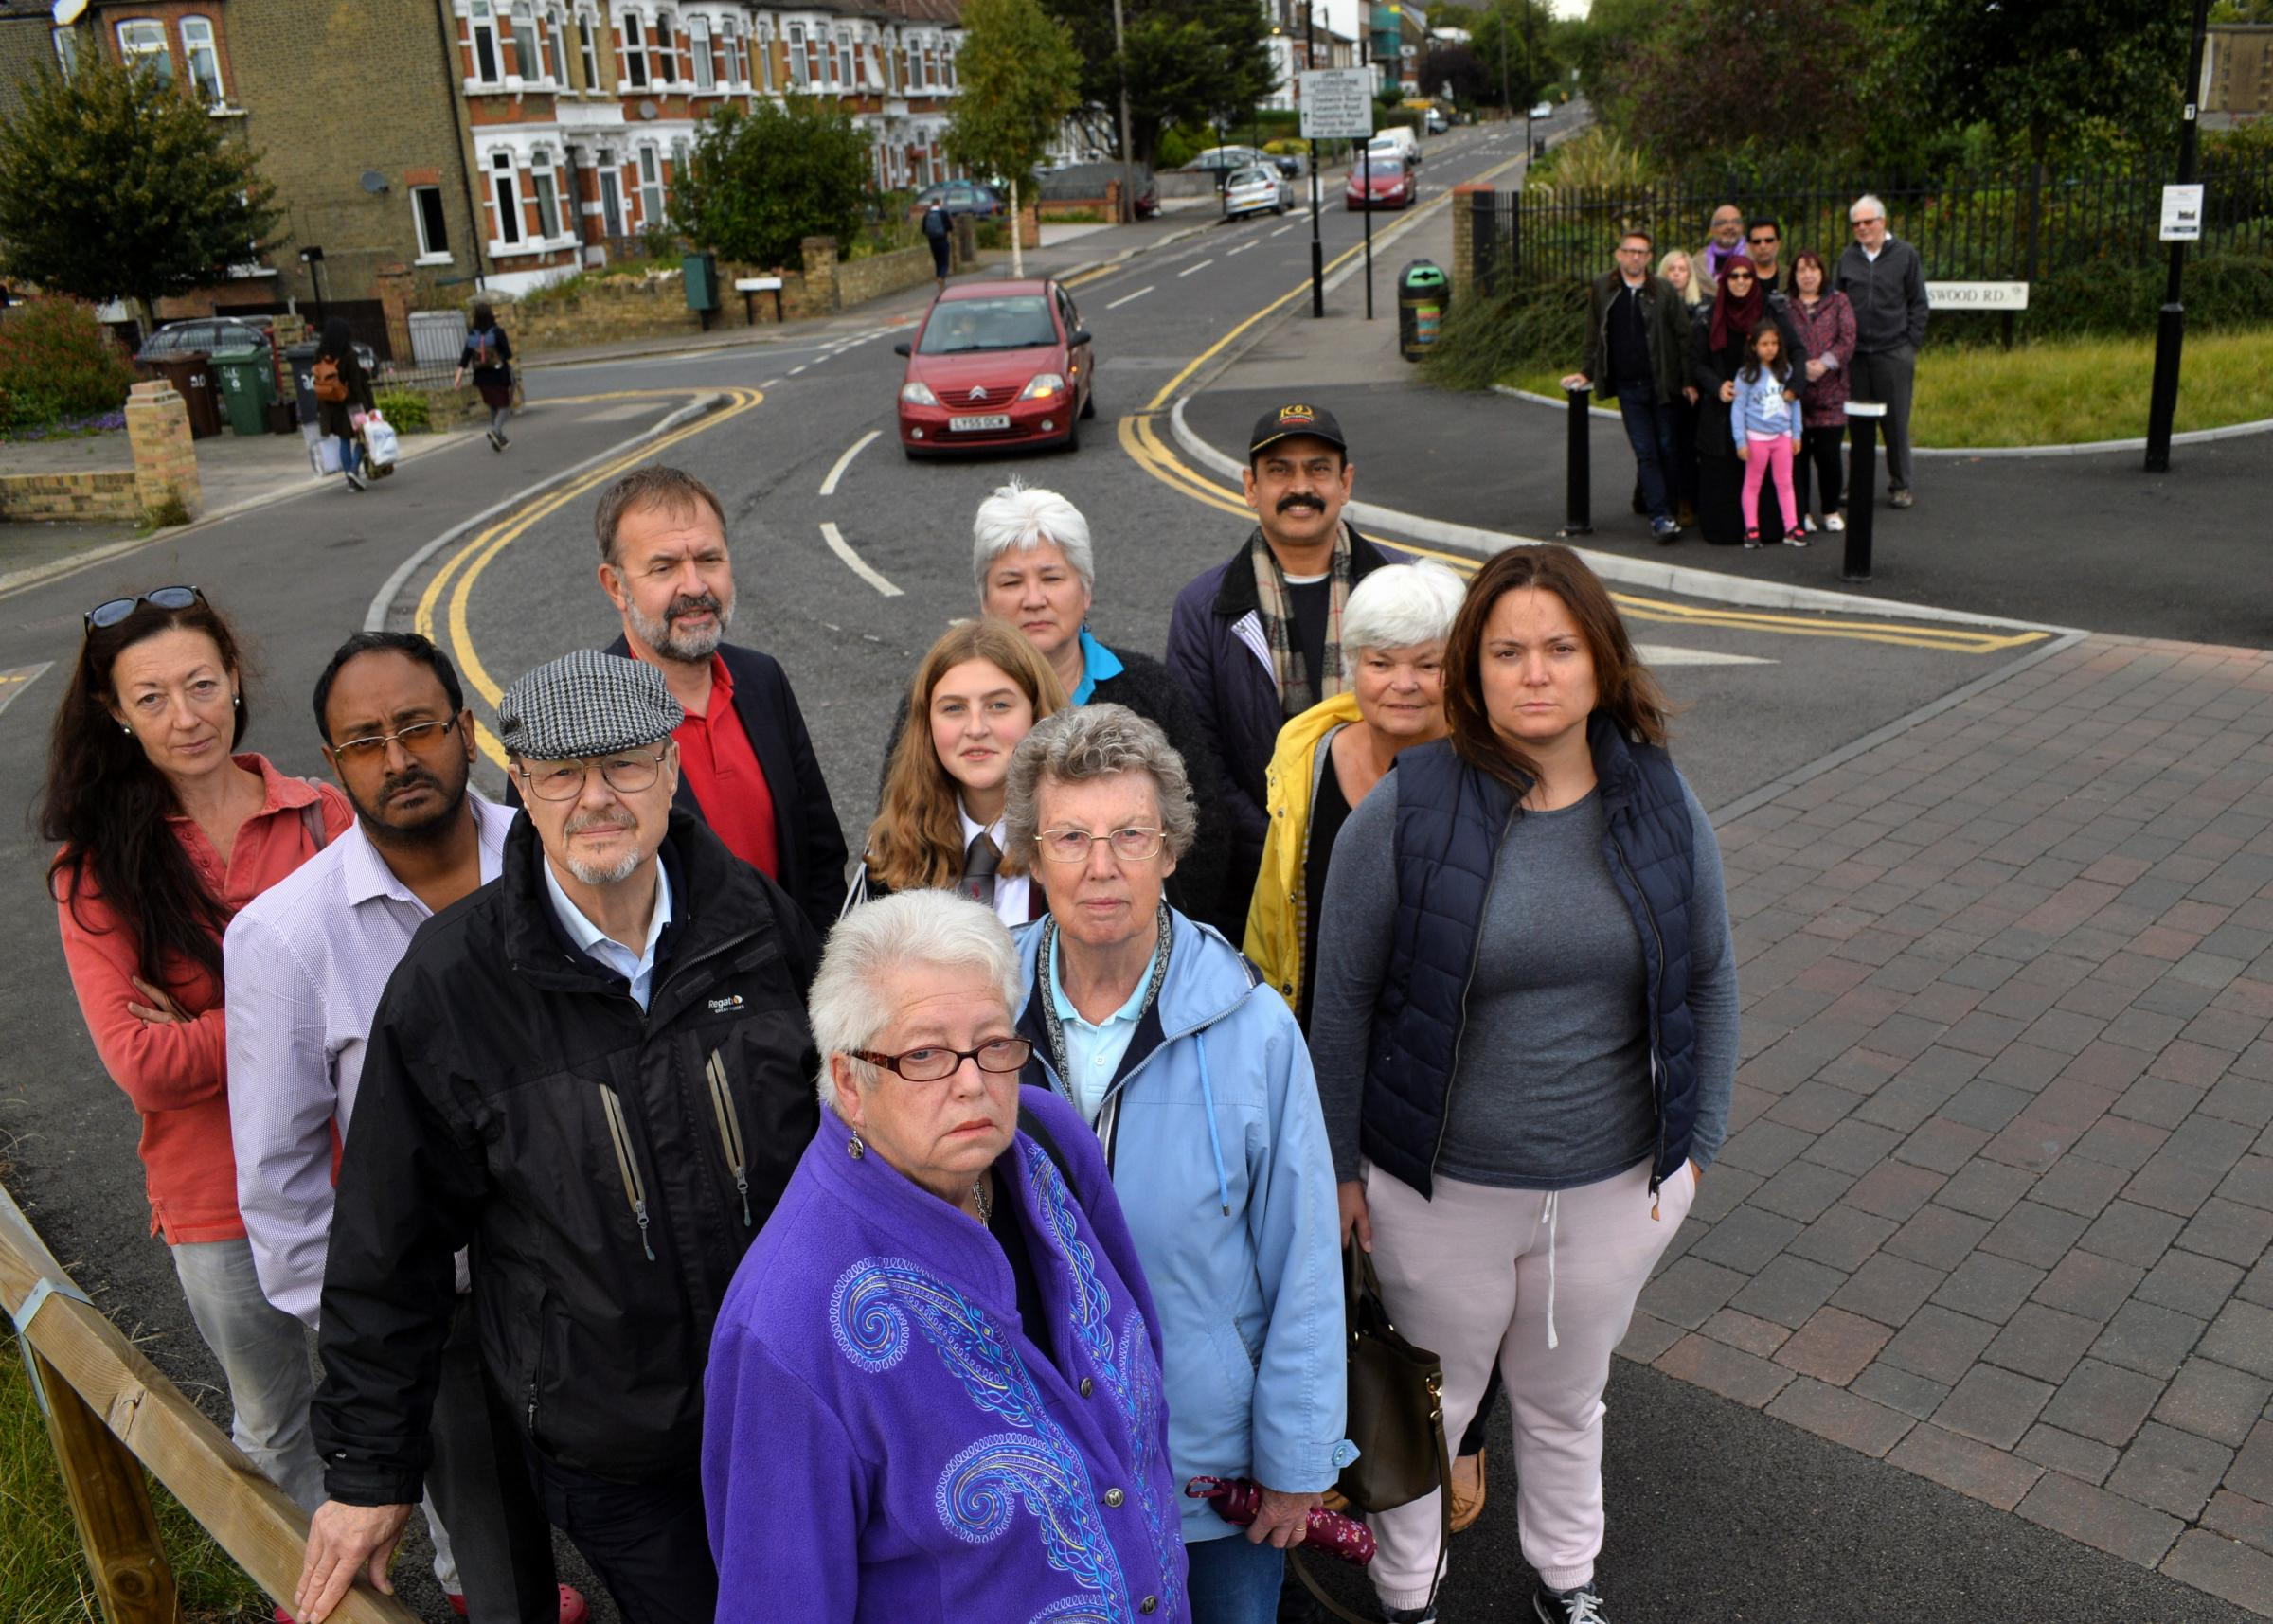 Neighbours call for action on 'dangerous' junction before someone gets hurt